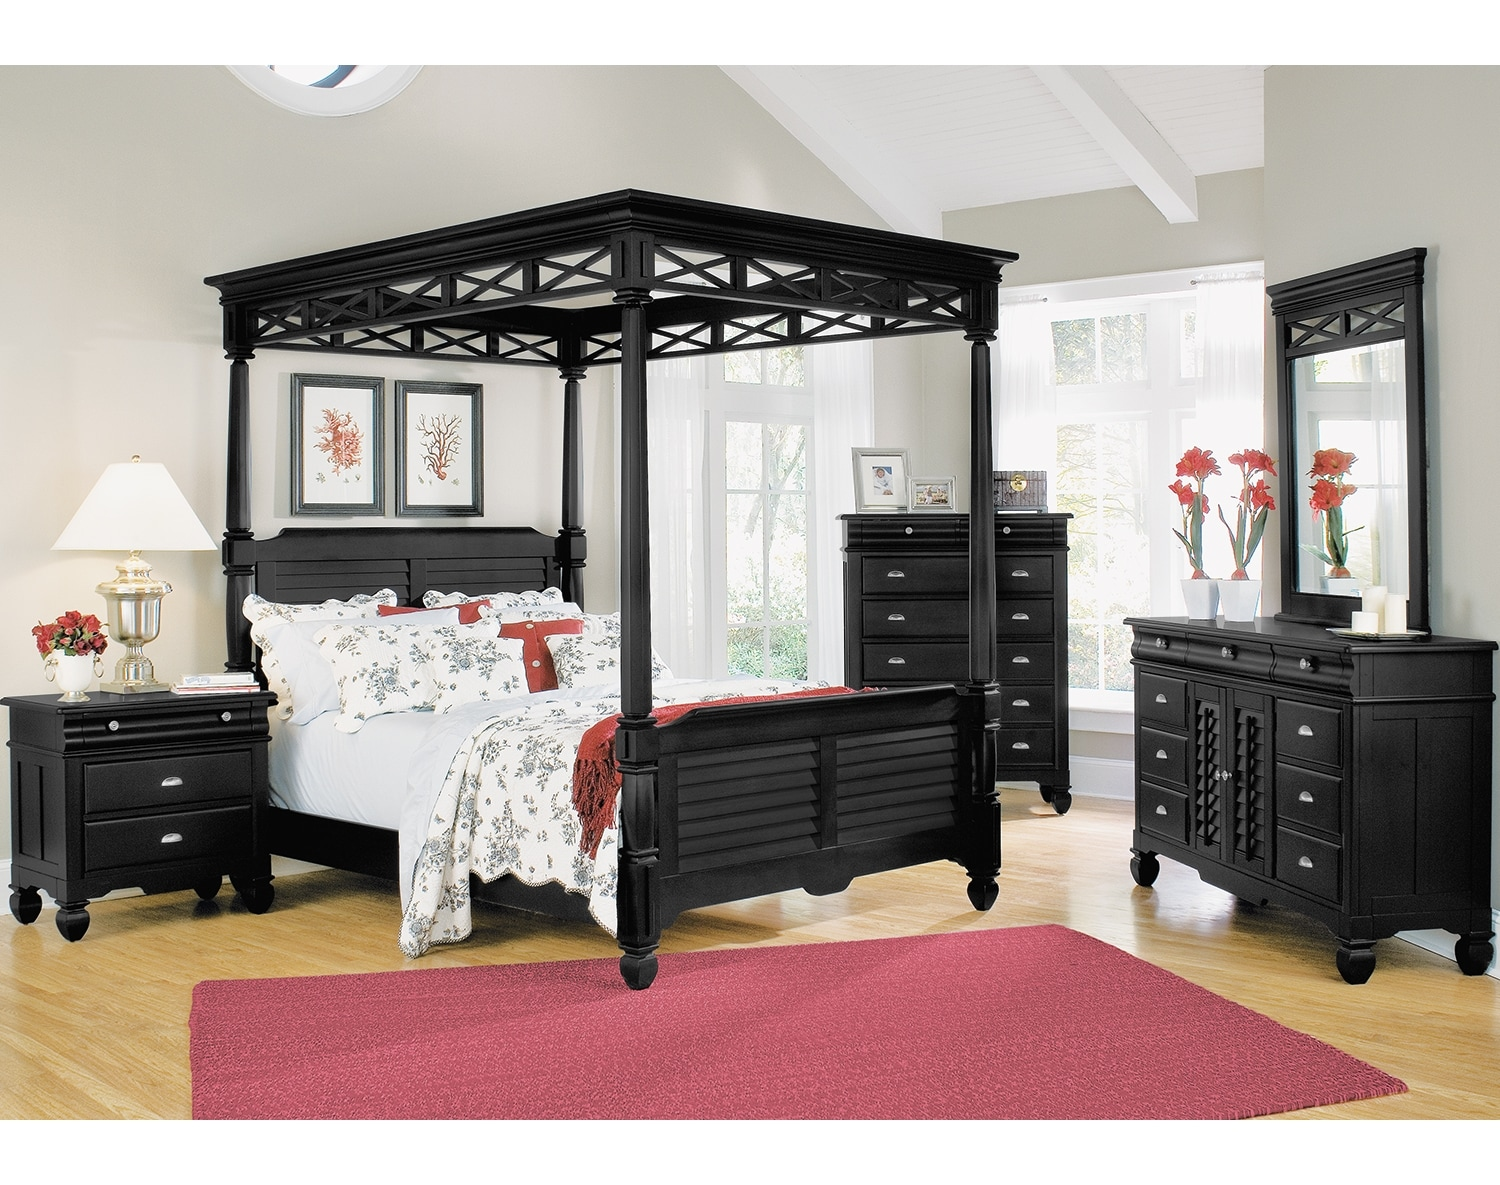 25  best ideas about Black canopy beds on Pinterest | Black beds ...